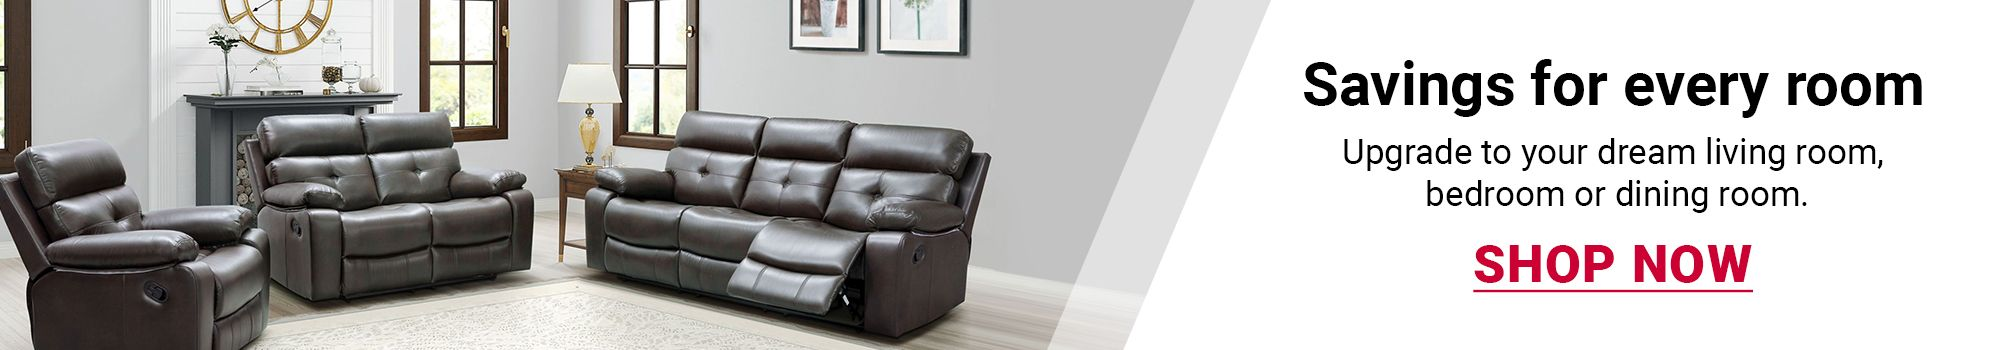 Savings for every room. Upgrade to your dream living room, bedroom or dining room. Click to Shop Now.